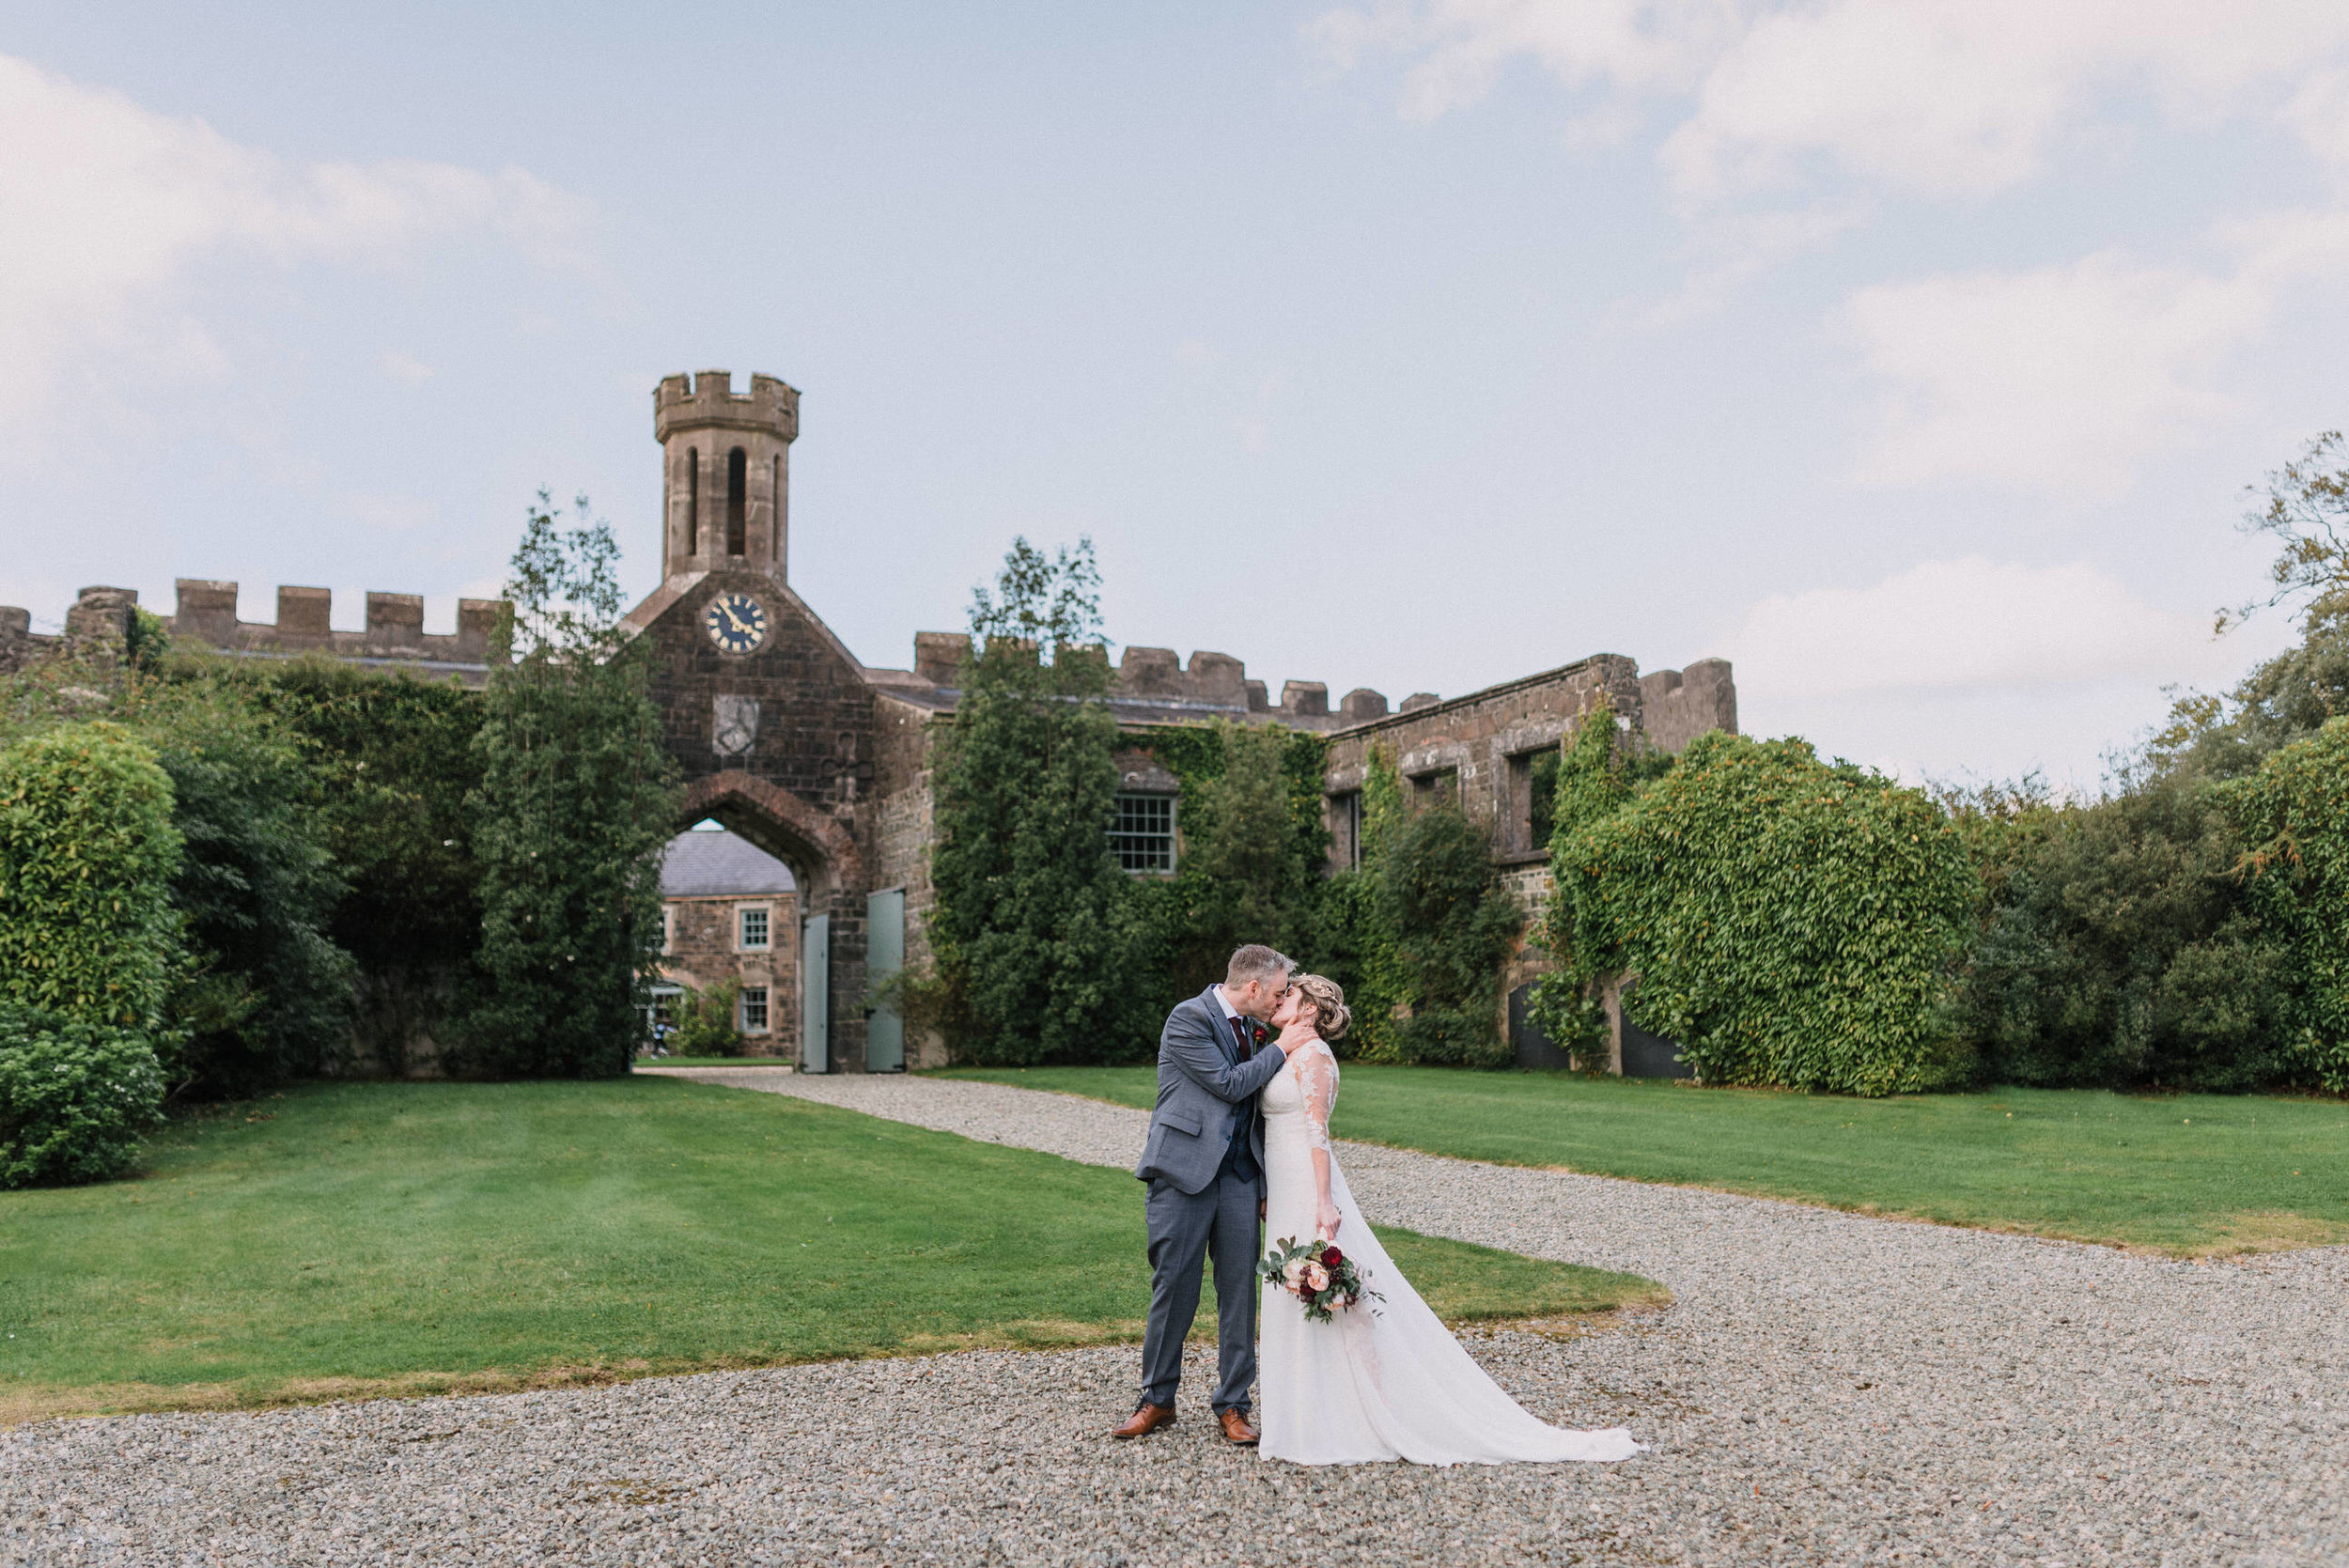 lissanoure castle wedding, northern ireland wedding photographer, romantic northern irish wedding venue, castle wedding ireland, natural wedding photography ni (87).jpg